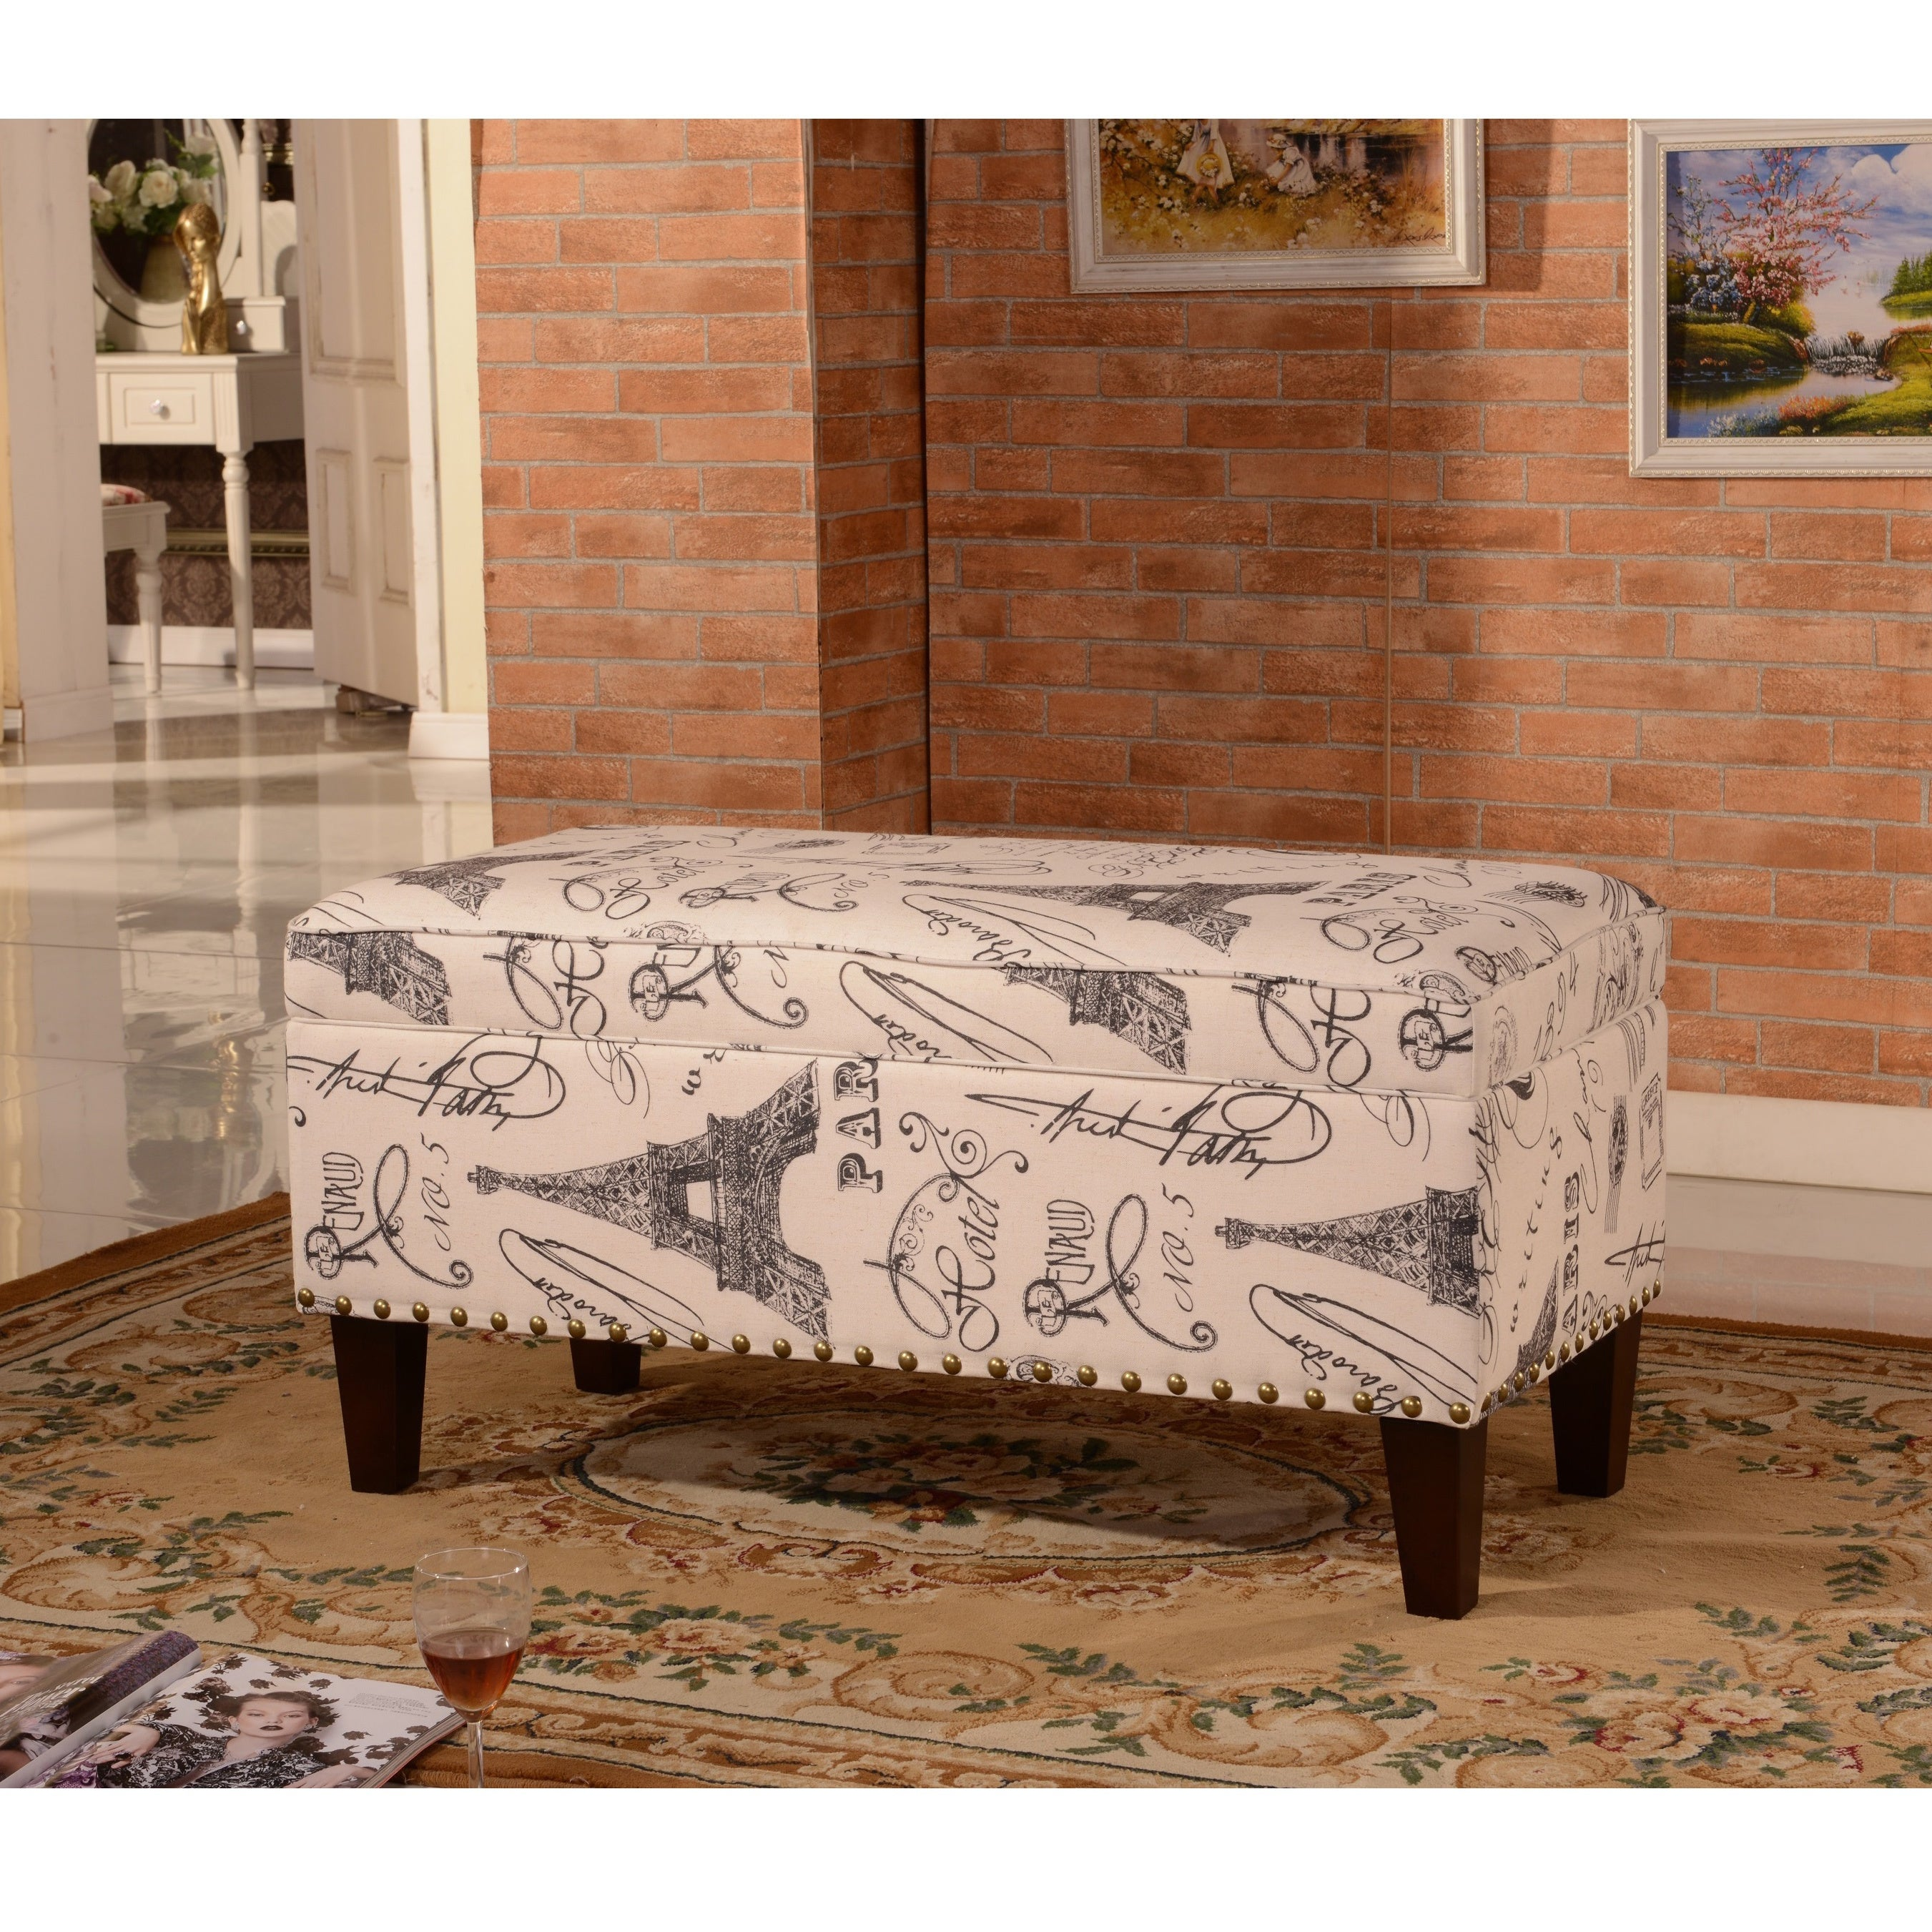 Luxury Comfort Collection Classic Paris Vintage French Writing Aqua Storage Bench Ottoman Overstock 9632404